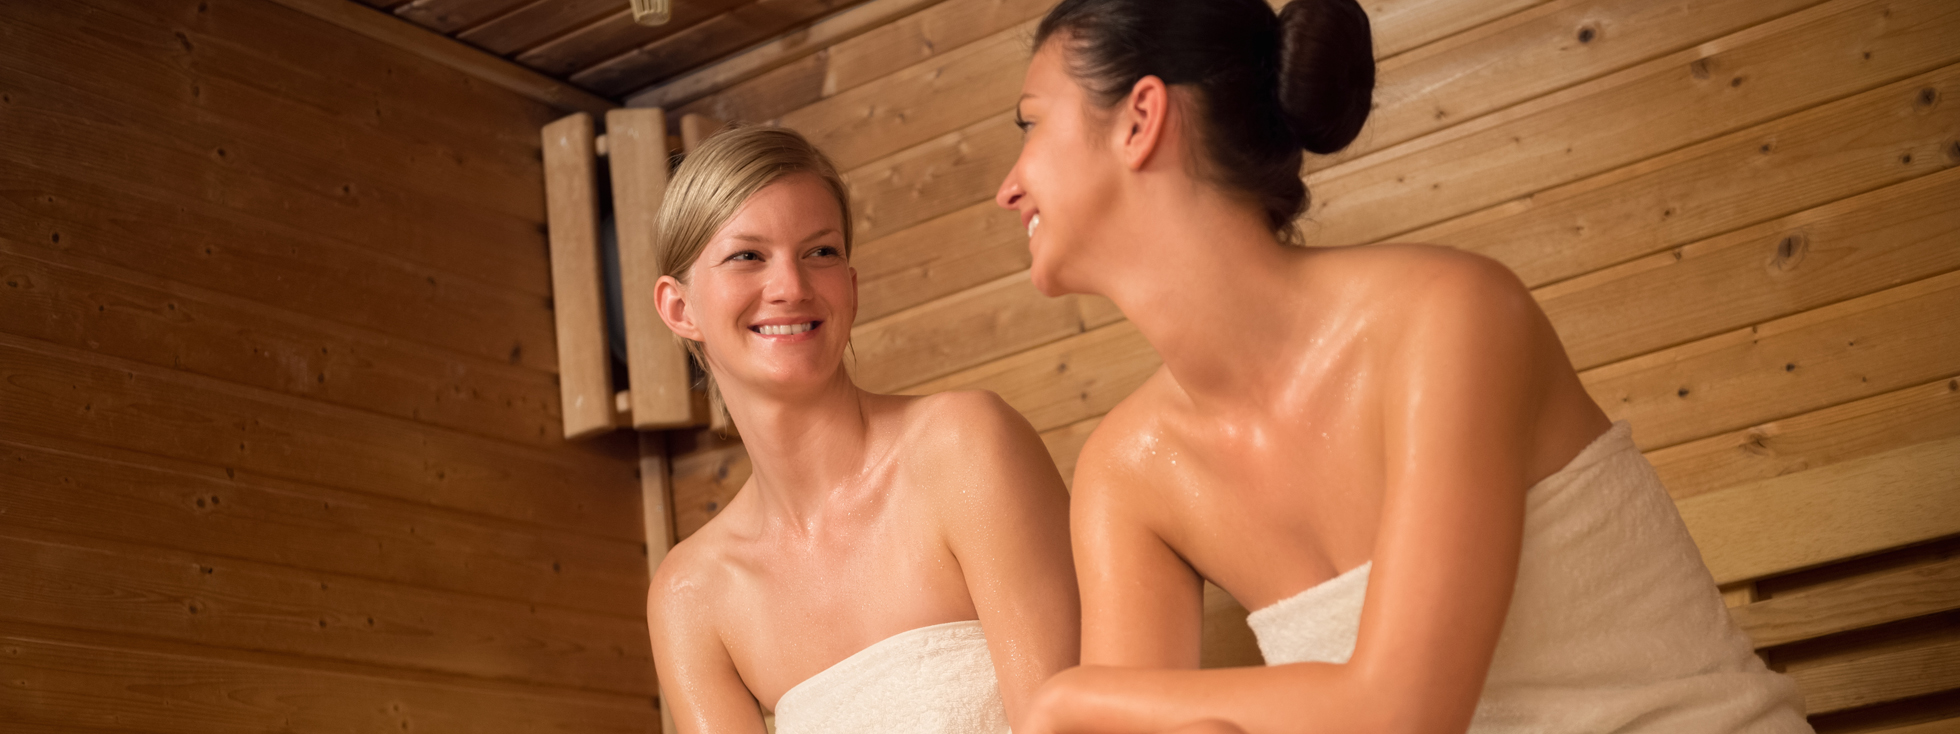 Frauen relaxen in Sauna